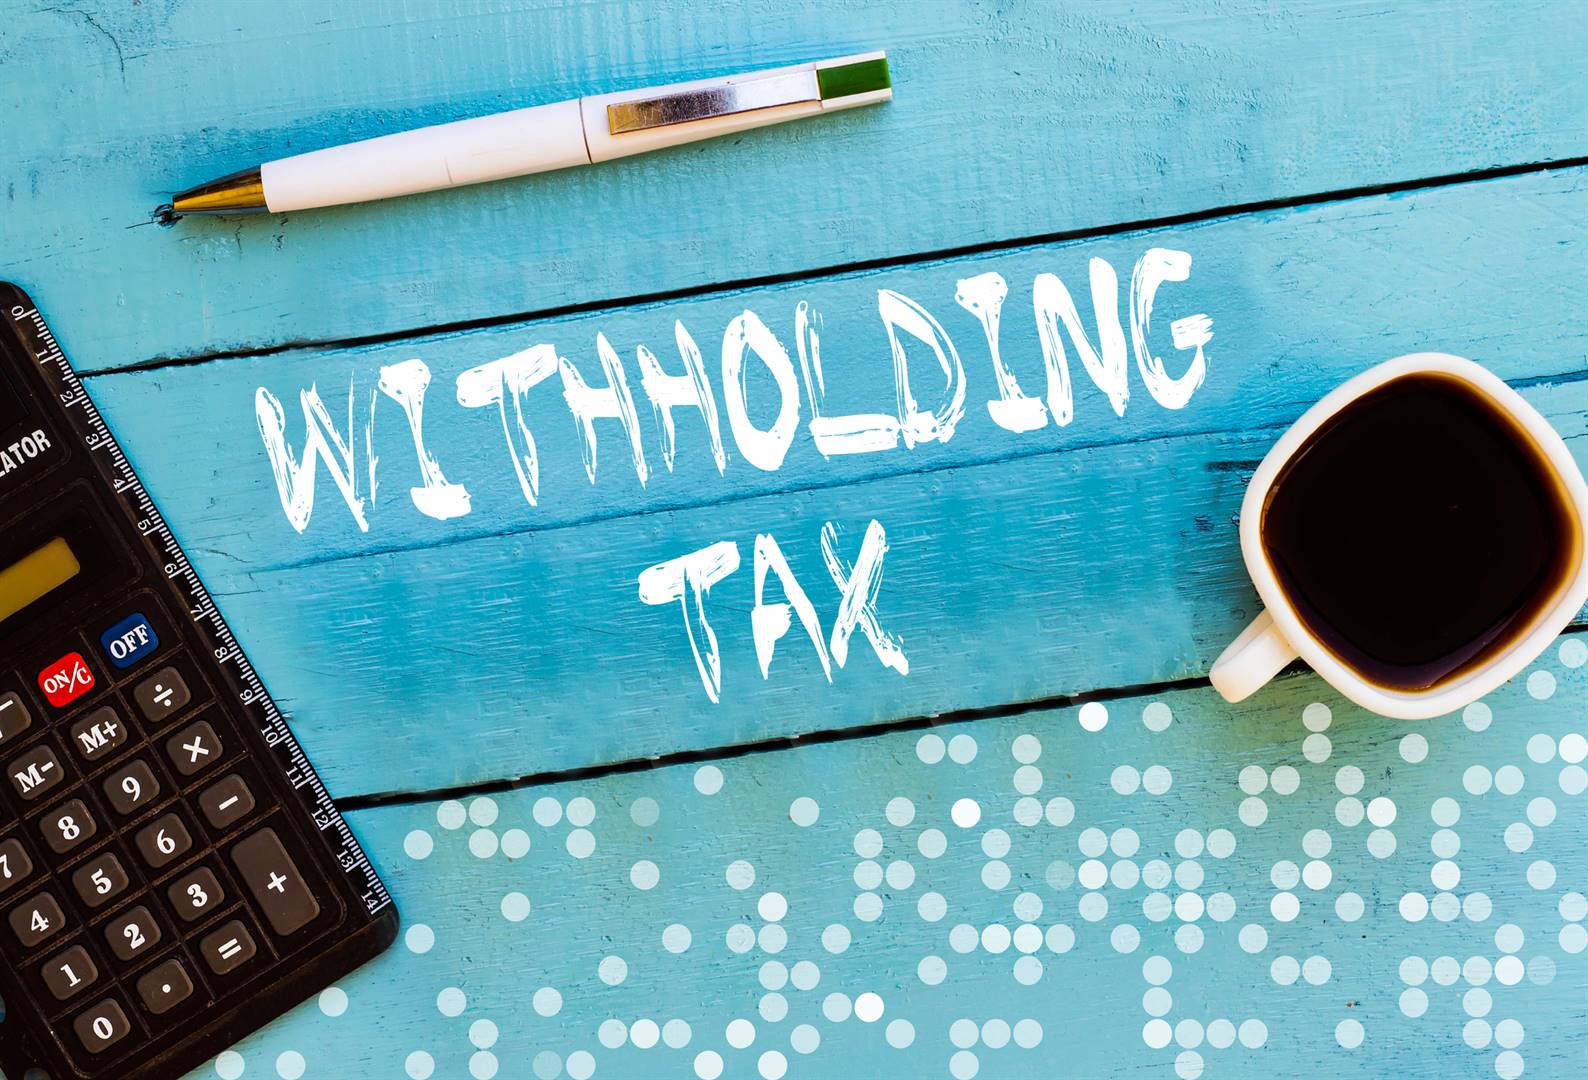 Only when citizens are respected as taxpayers and as the masters of government, not its servants, can a sincere conversation about tax collection be had, writes Martin van Staden. Picture: iStock/Gallo Images